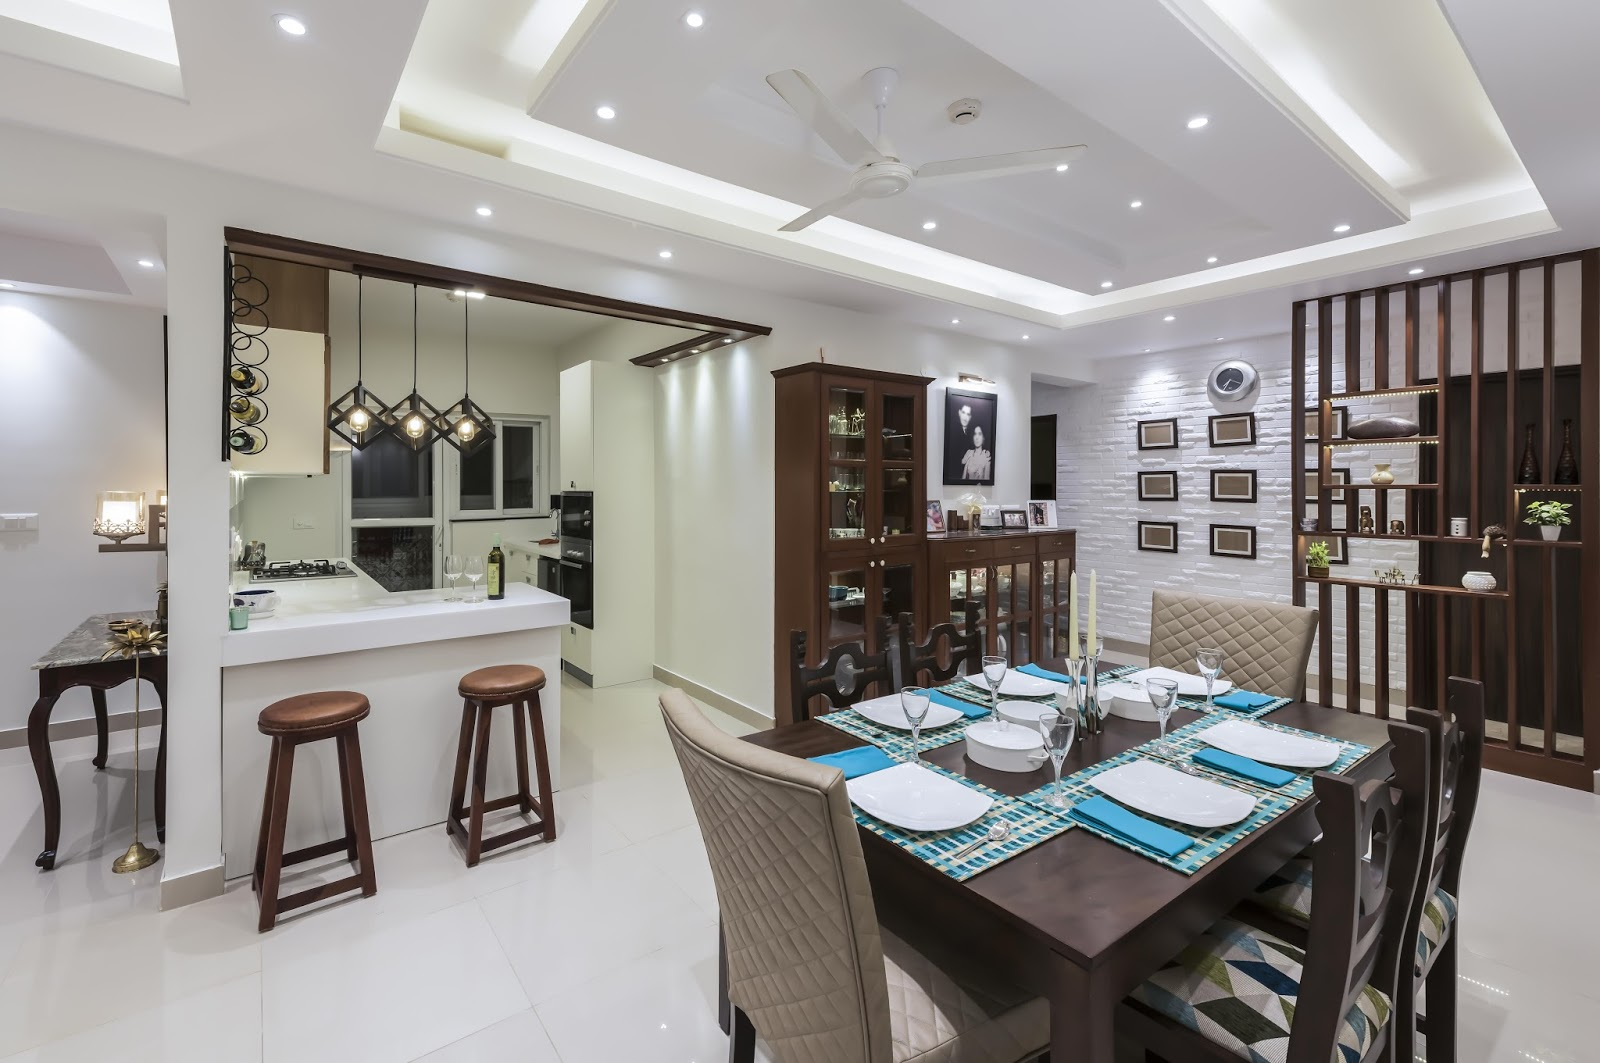 home design ideas some photographs of my home interior project at